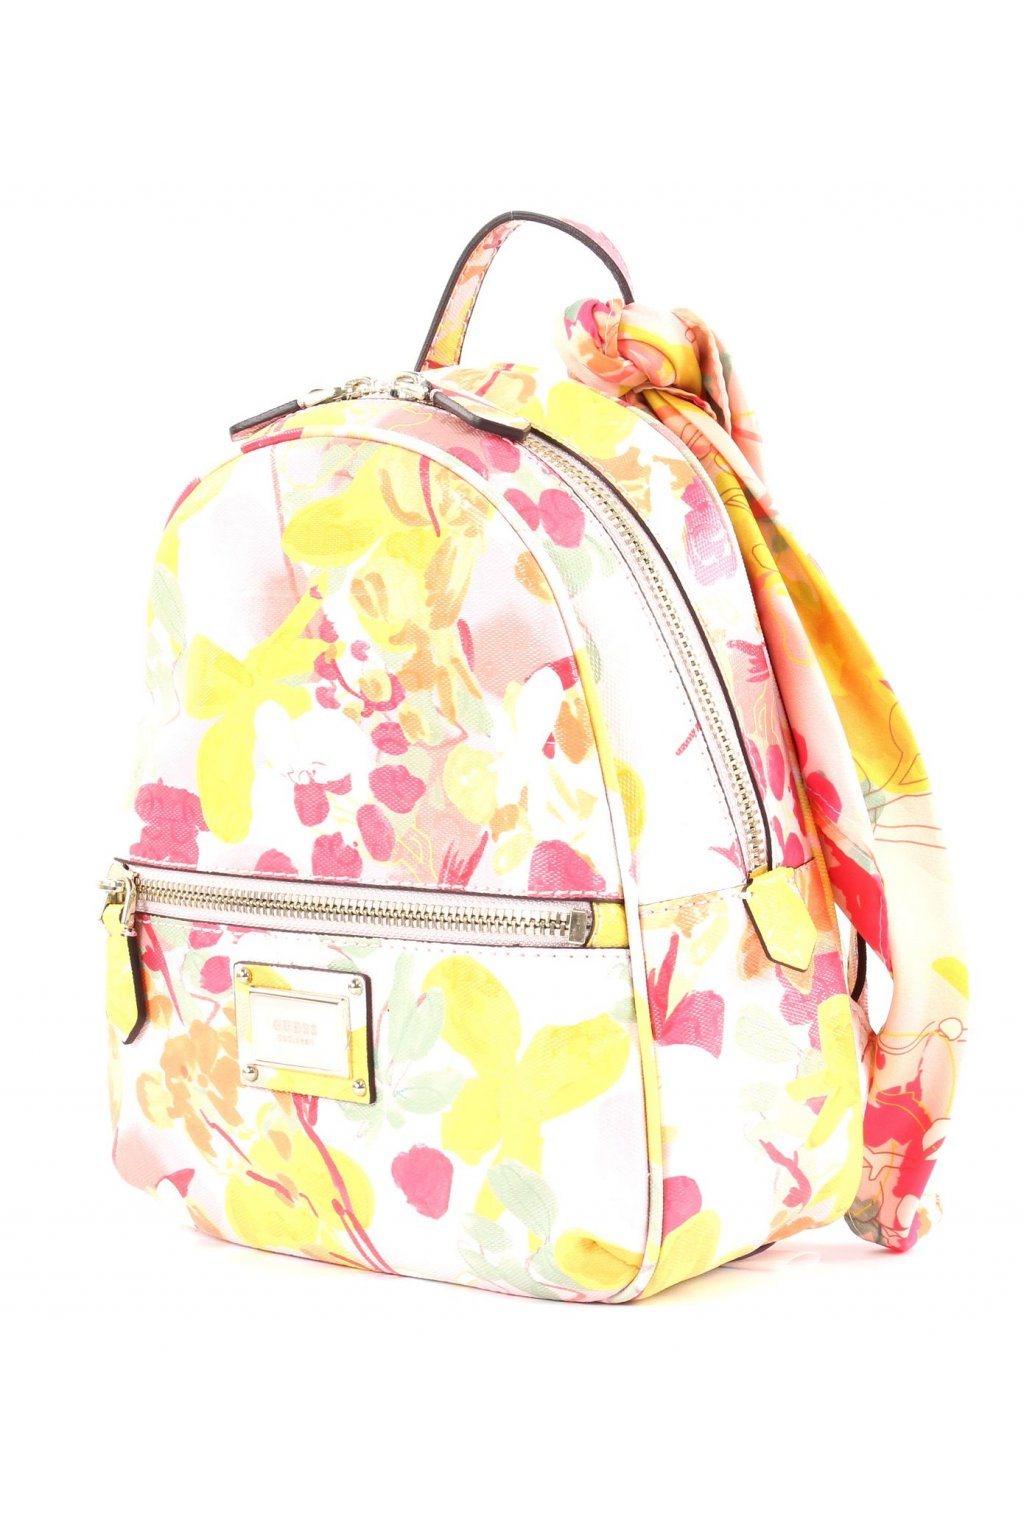 GUESS Rucksack Shannon Backpack Floral Multi 159 1